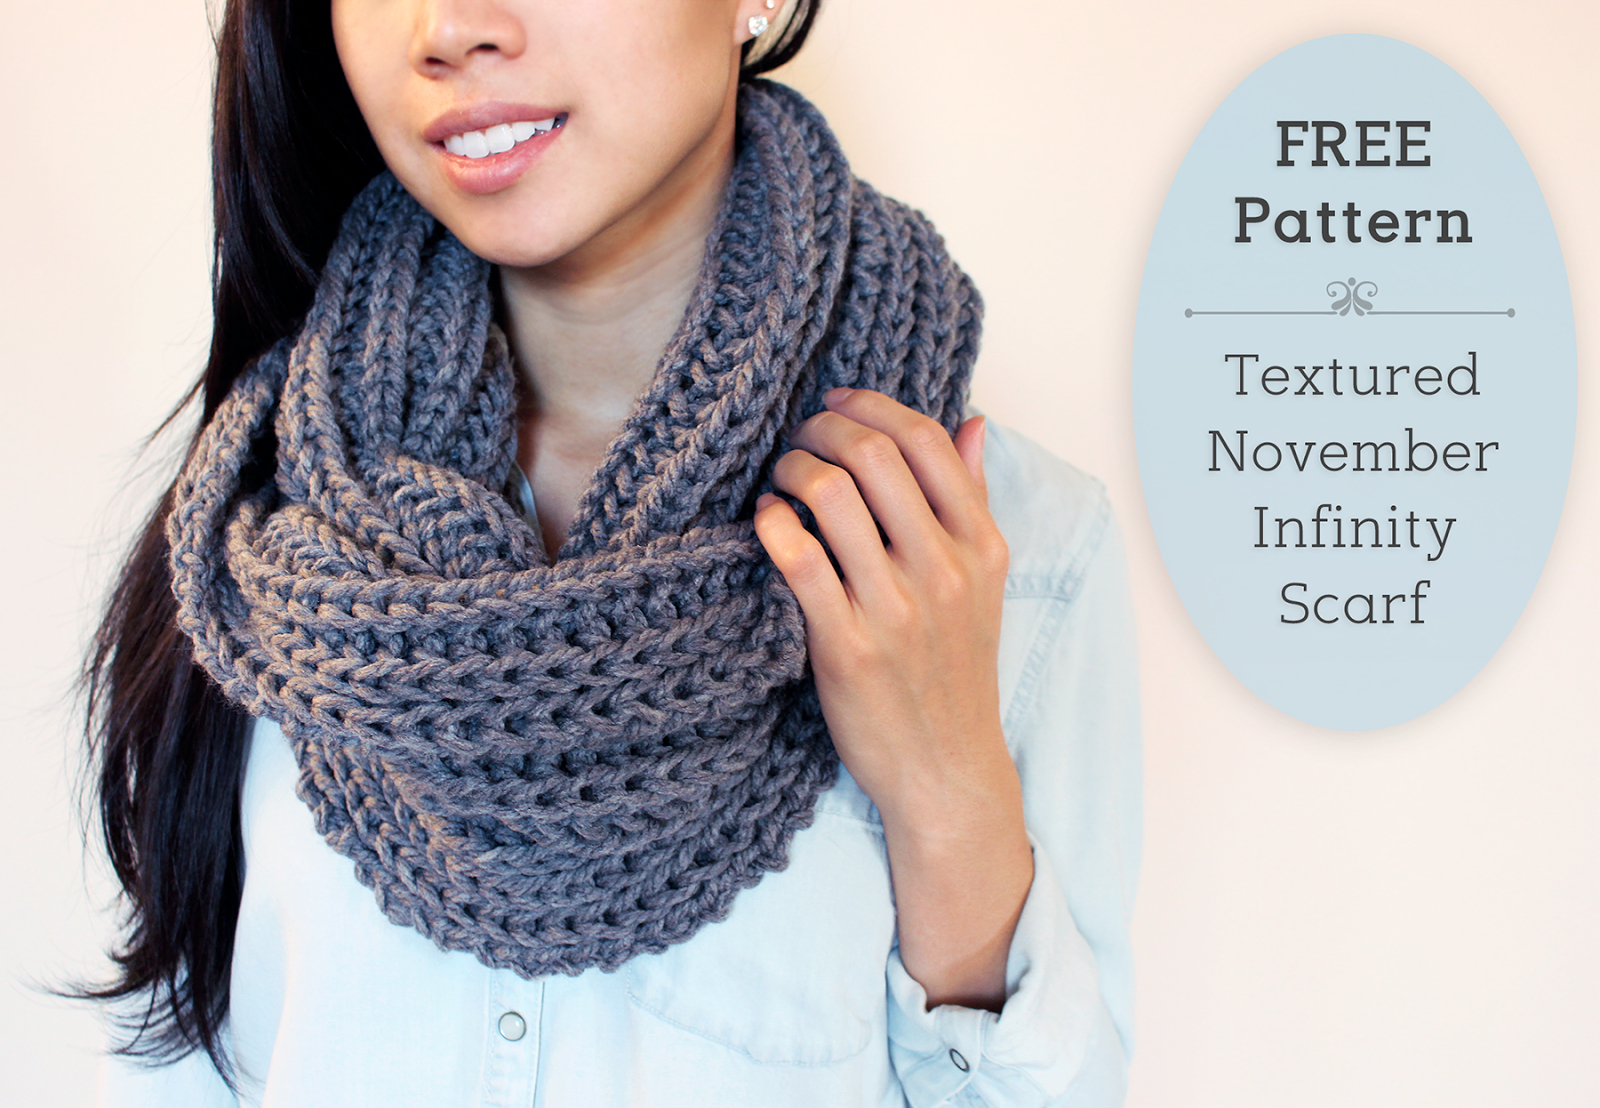 Chunky Knit Infinity Scarf Pattern Purllin Textured November Infinity Scarf Free Pattern